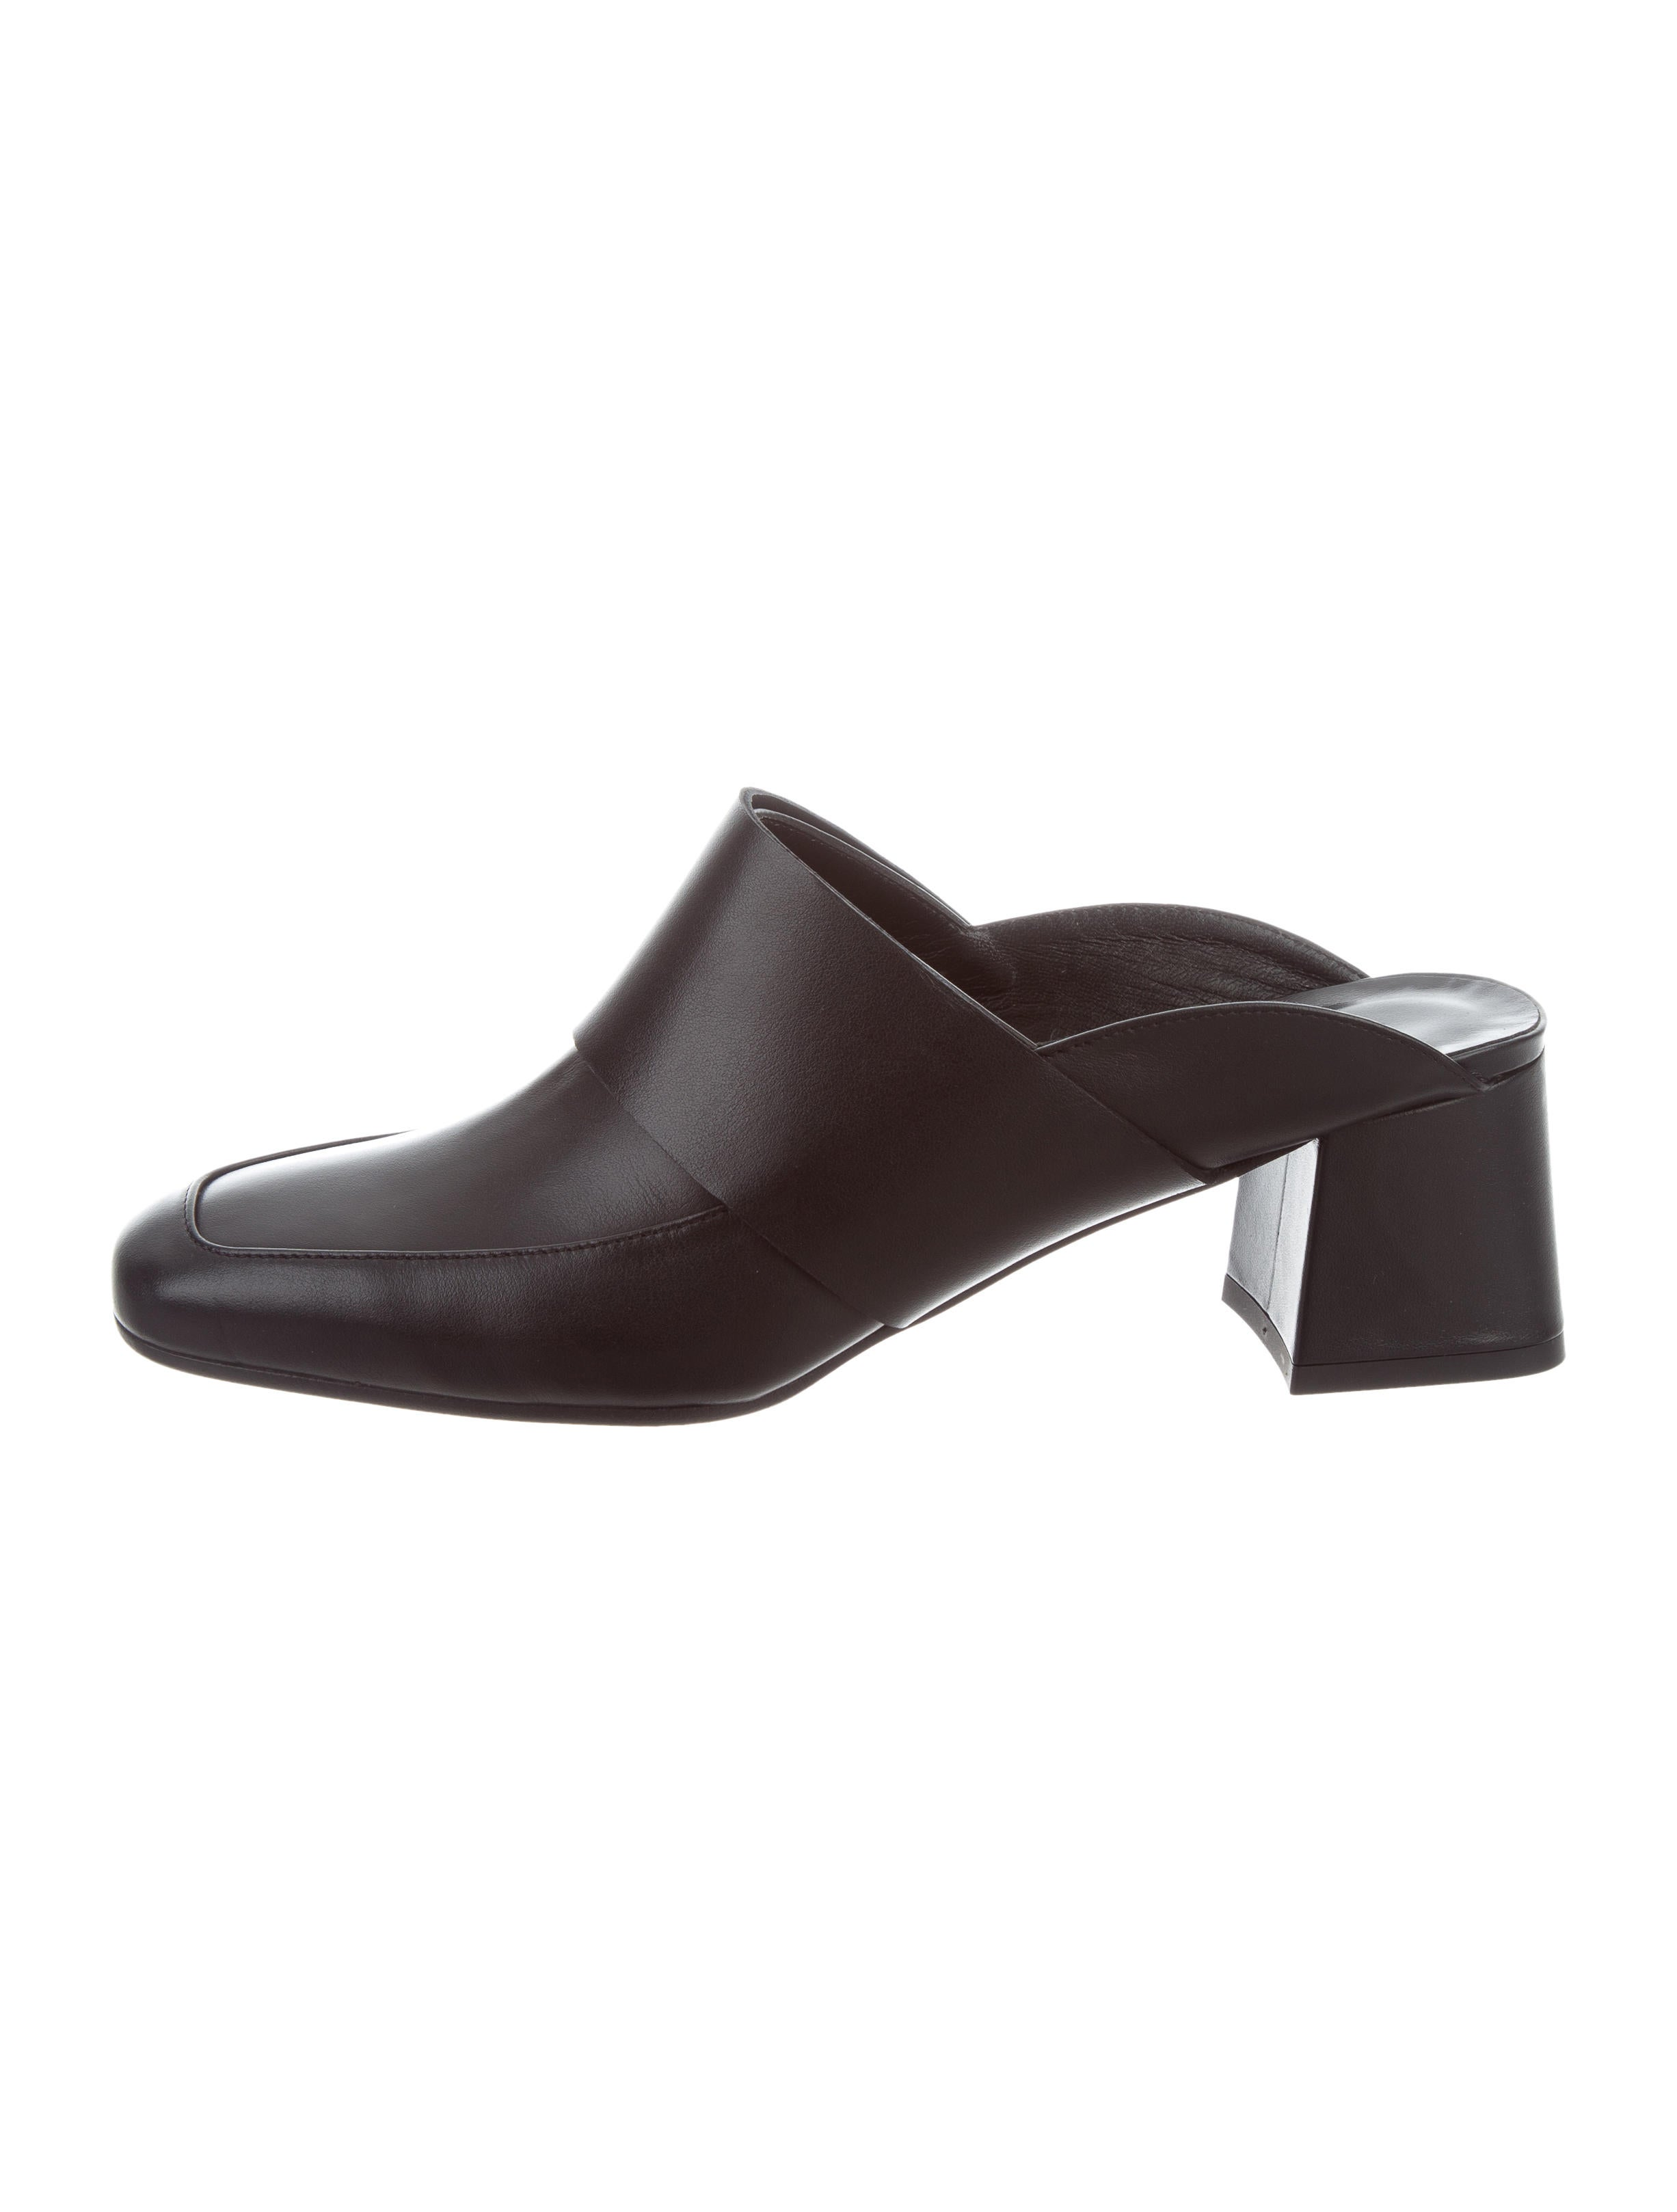 very cheap sale online cheap best Aska Gwynne Leather Mules sale amazing price wCZSjiG82